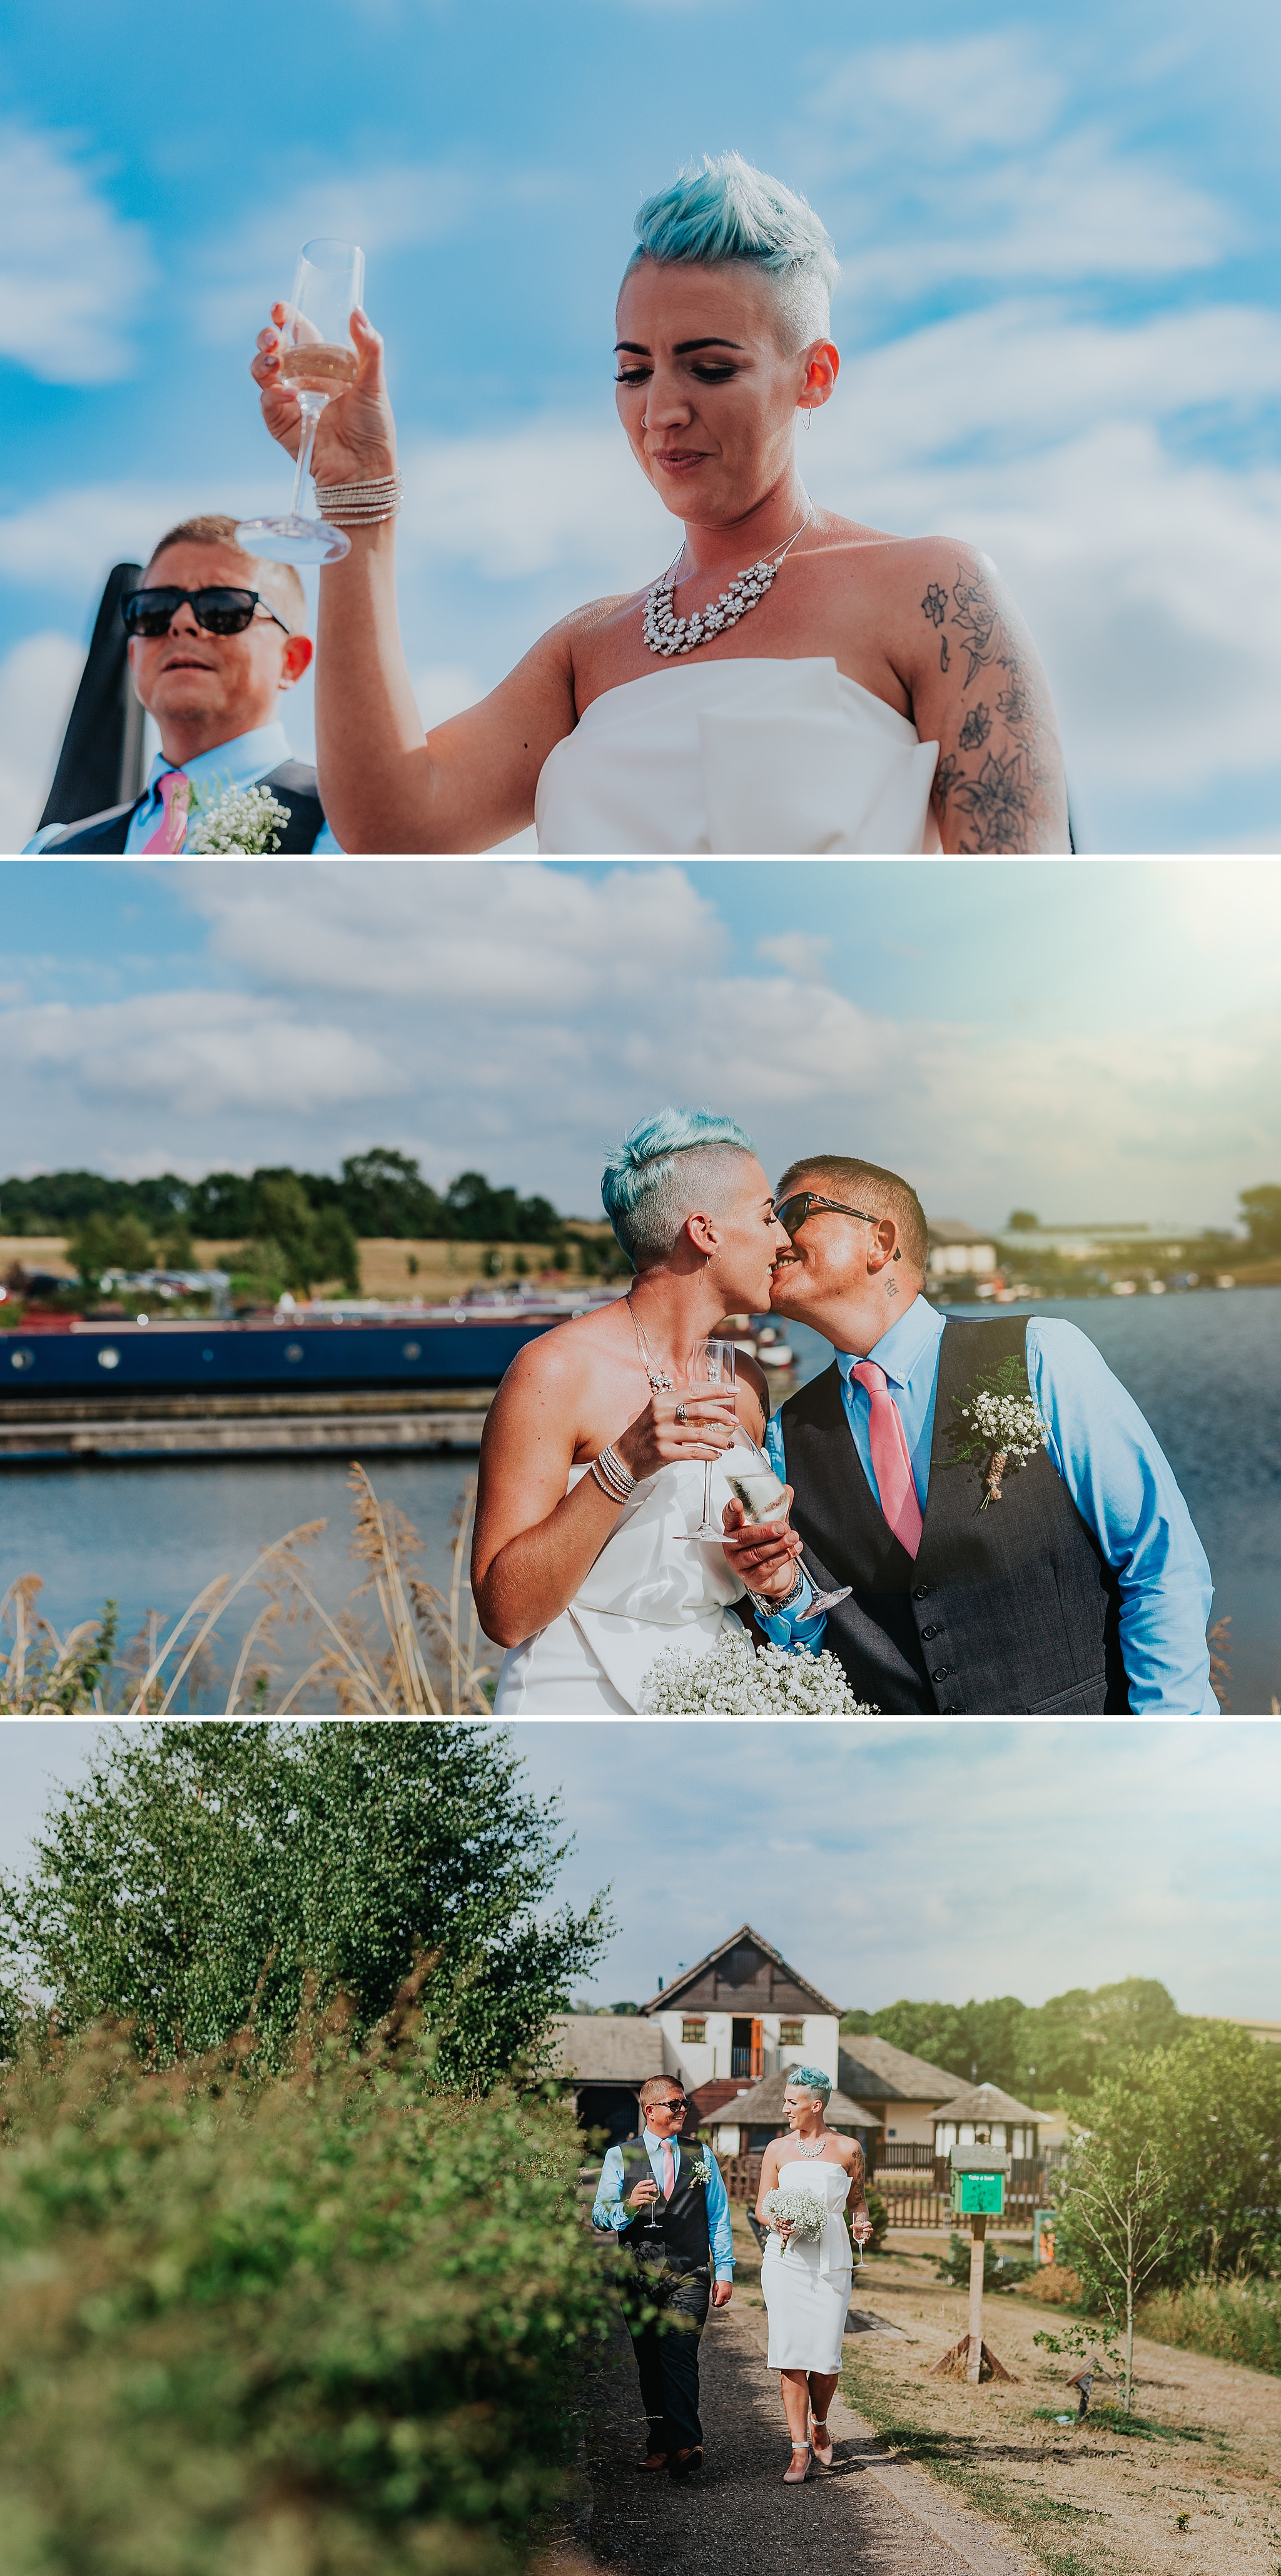 Aston Marina wedding, Staffordshire, wedding photographer